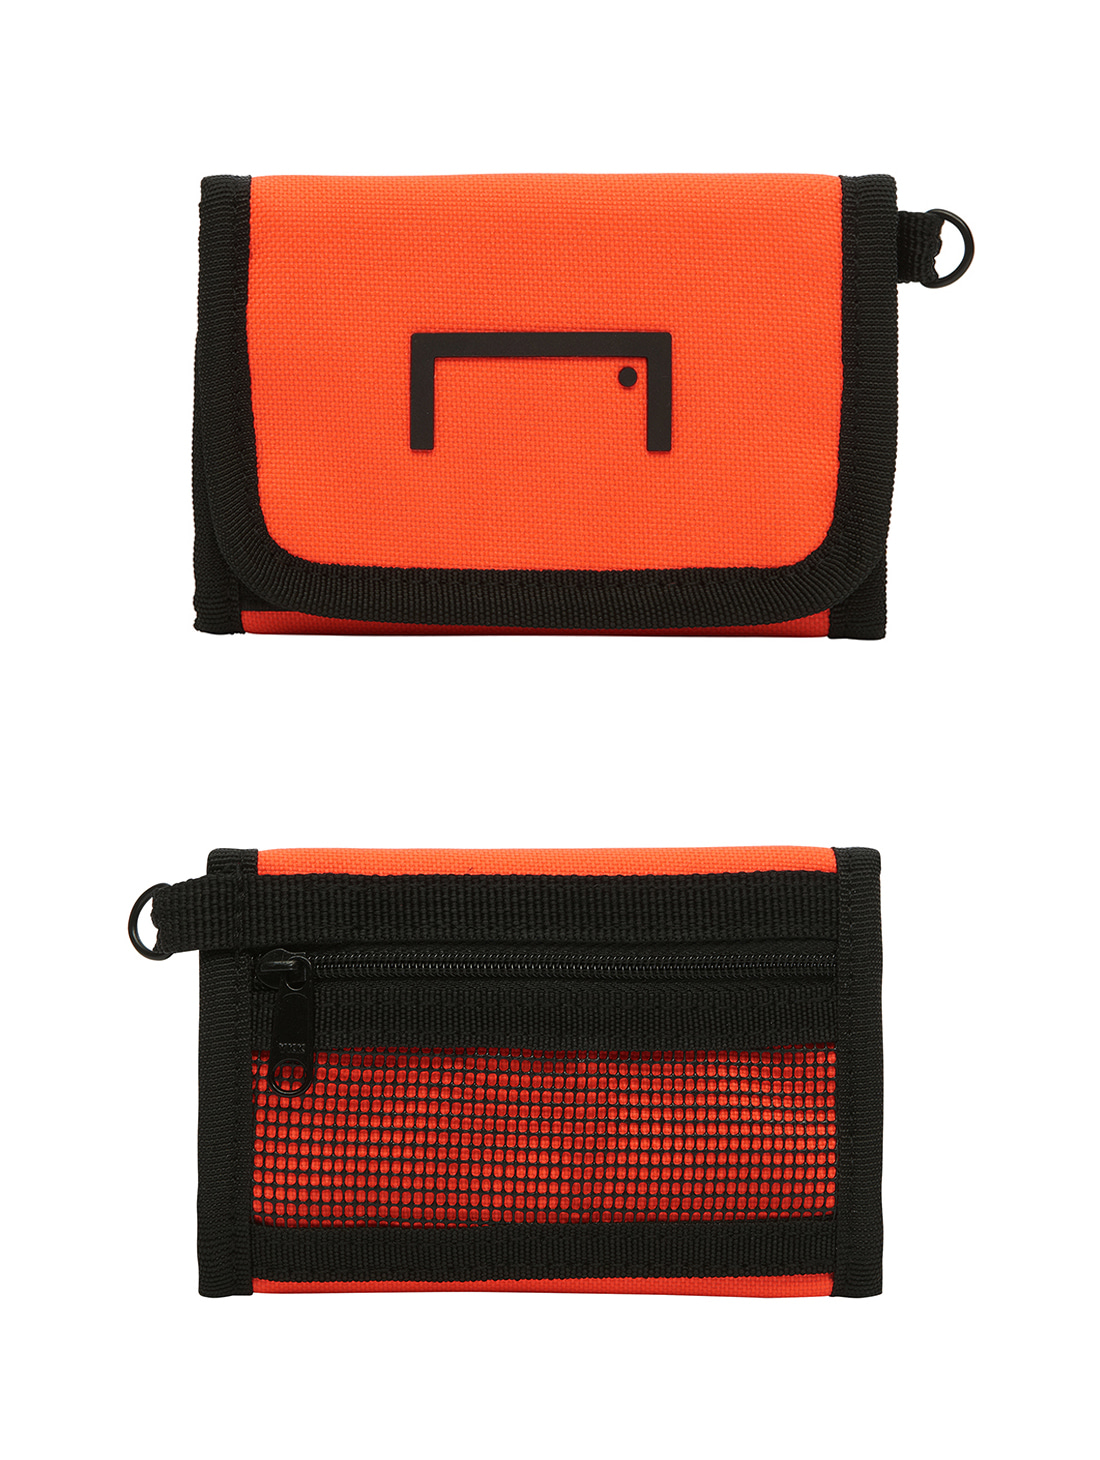 VELCRO WALLET - ORANGE